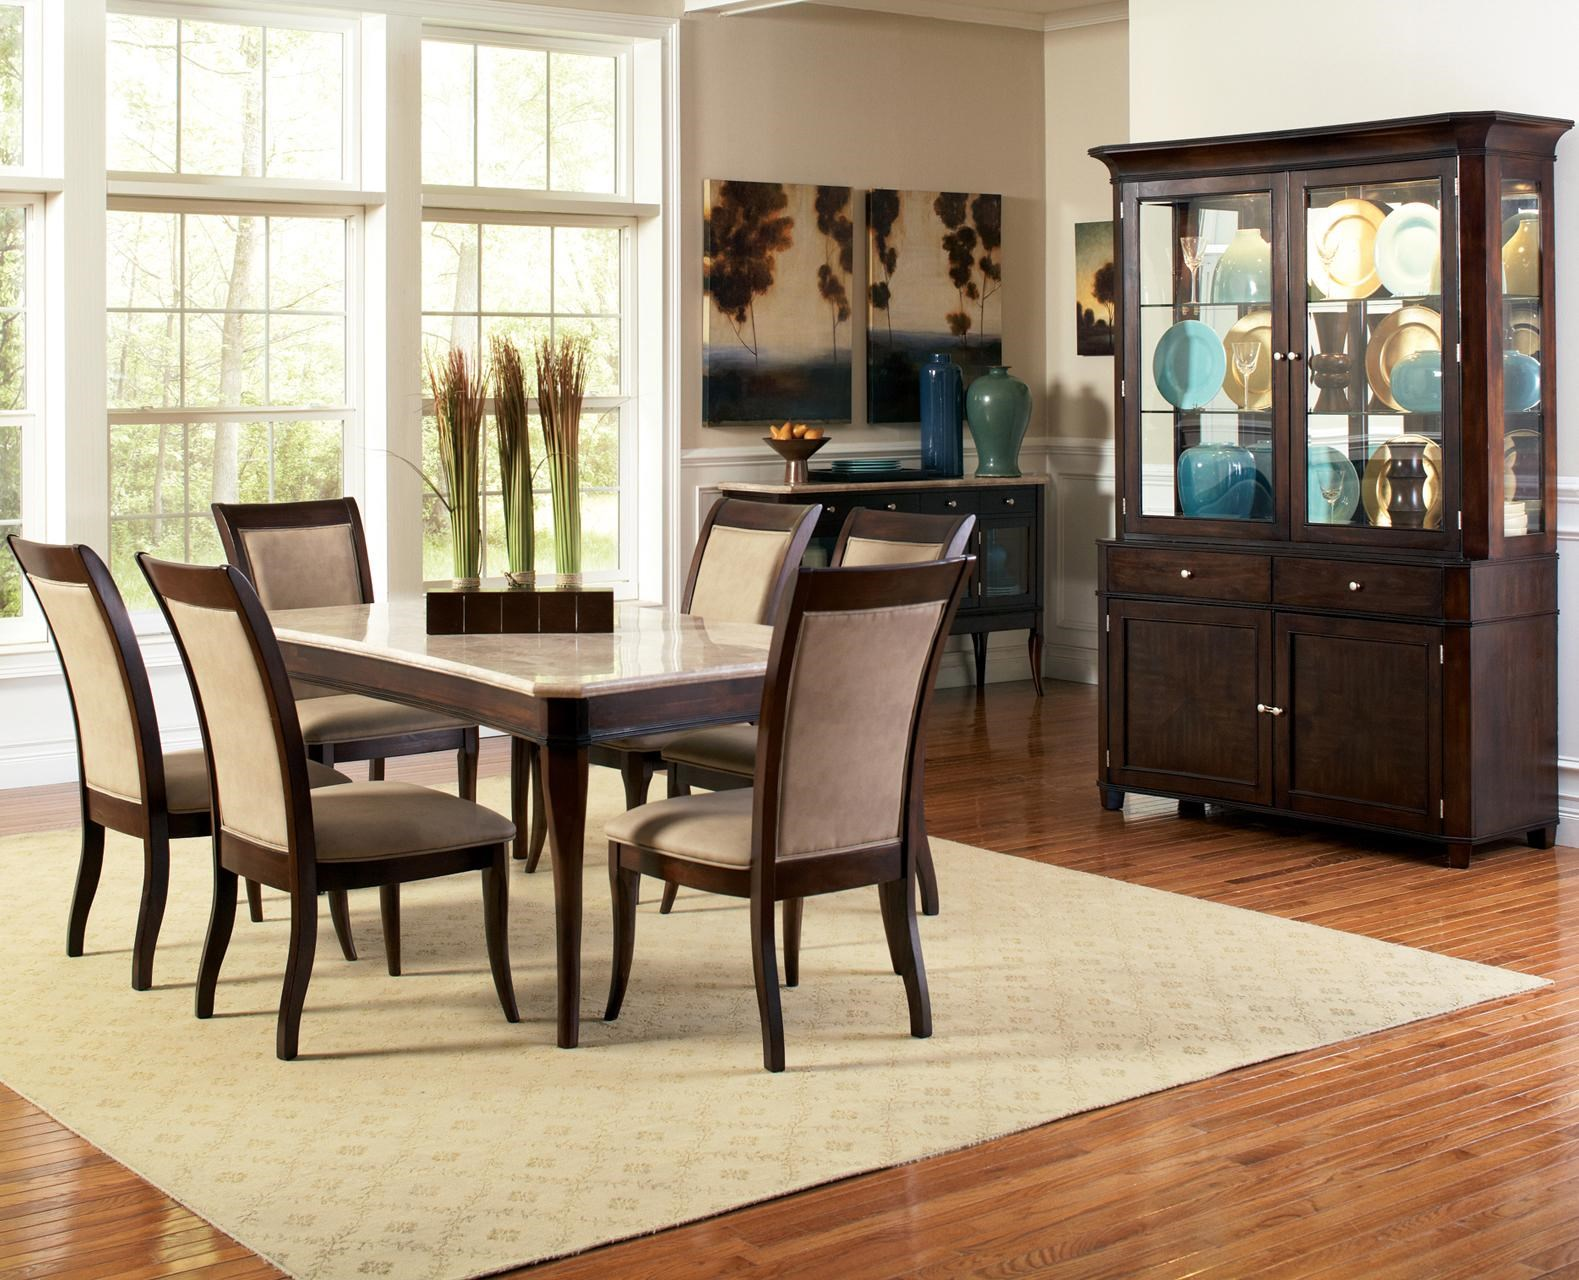 Attirant Factory Direct Furniture Cleveland Ms